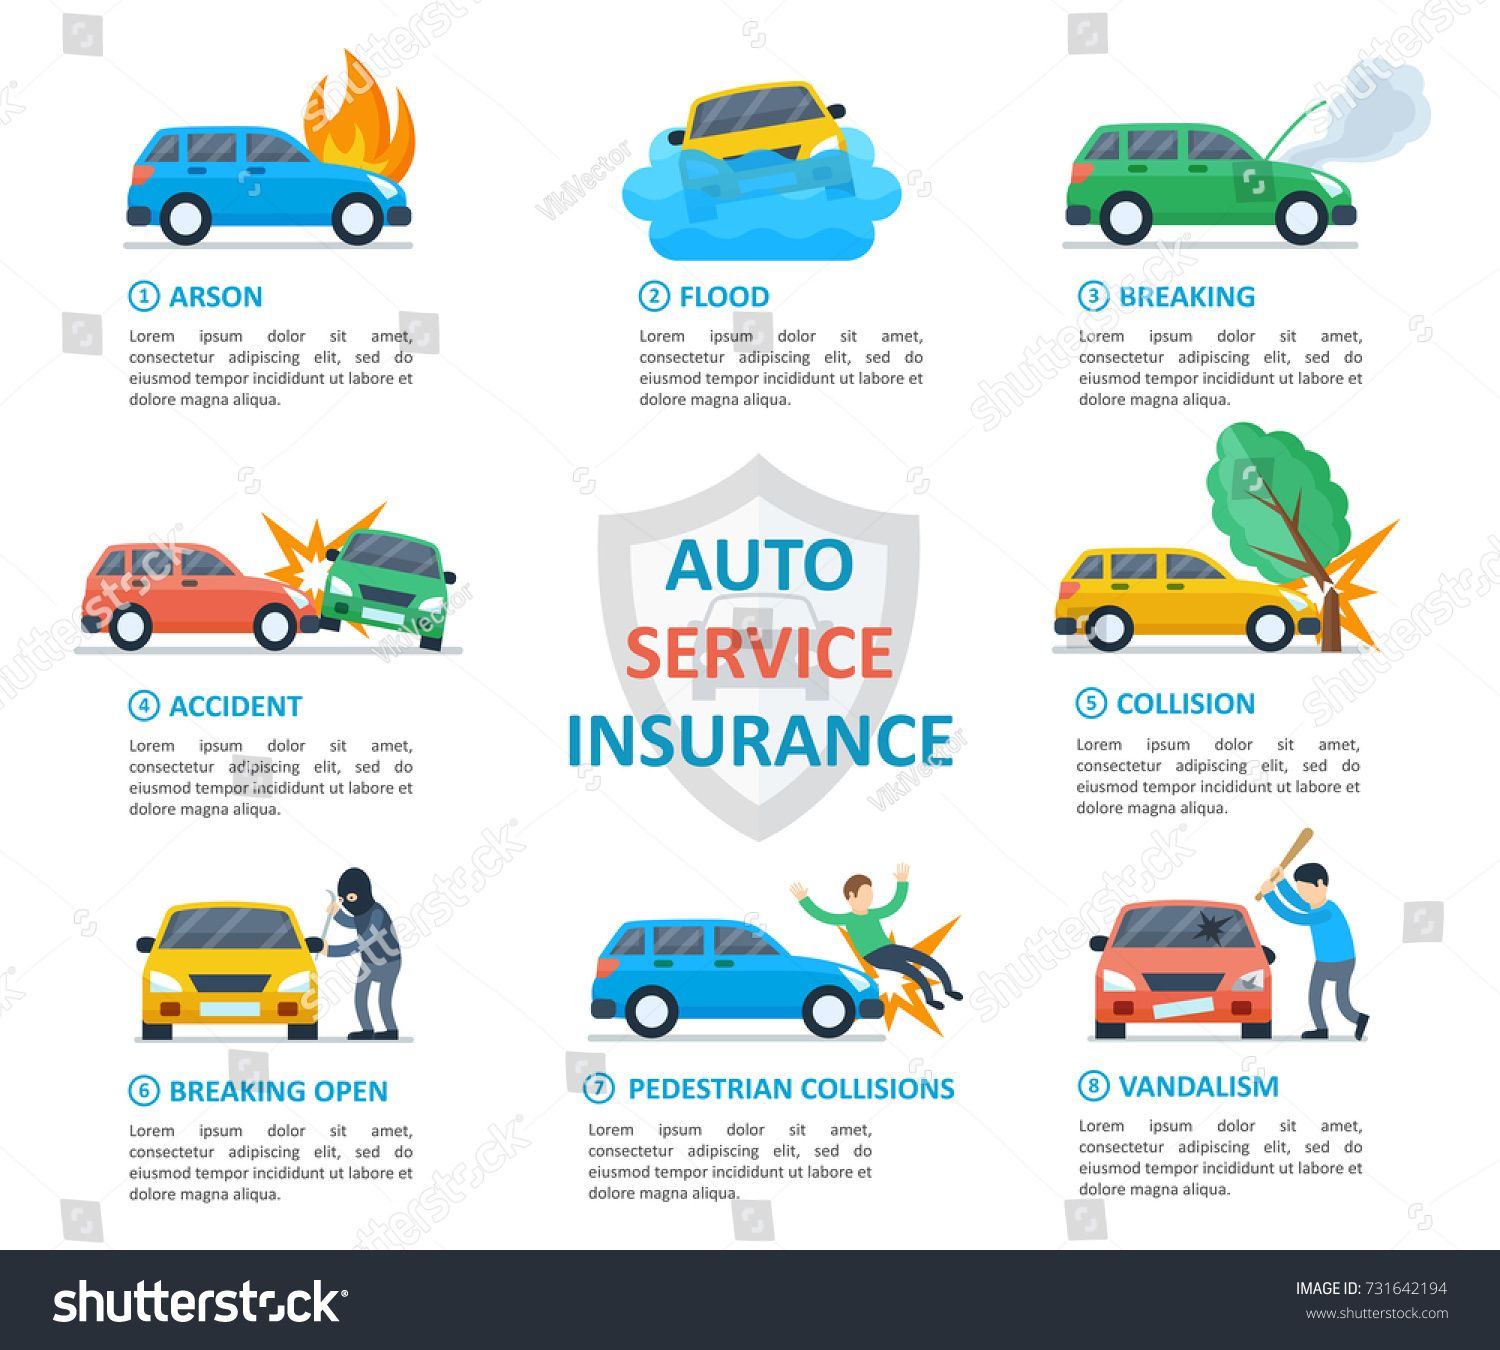 Car Insurance After Accident >> Car Insurance Auto Service After An Accident Or Arson